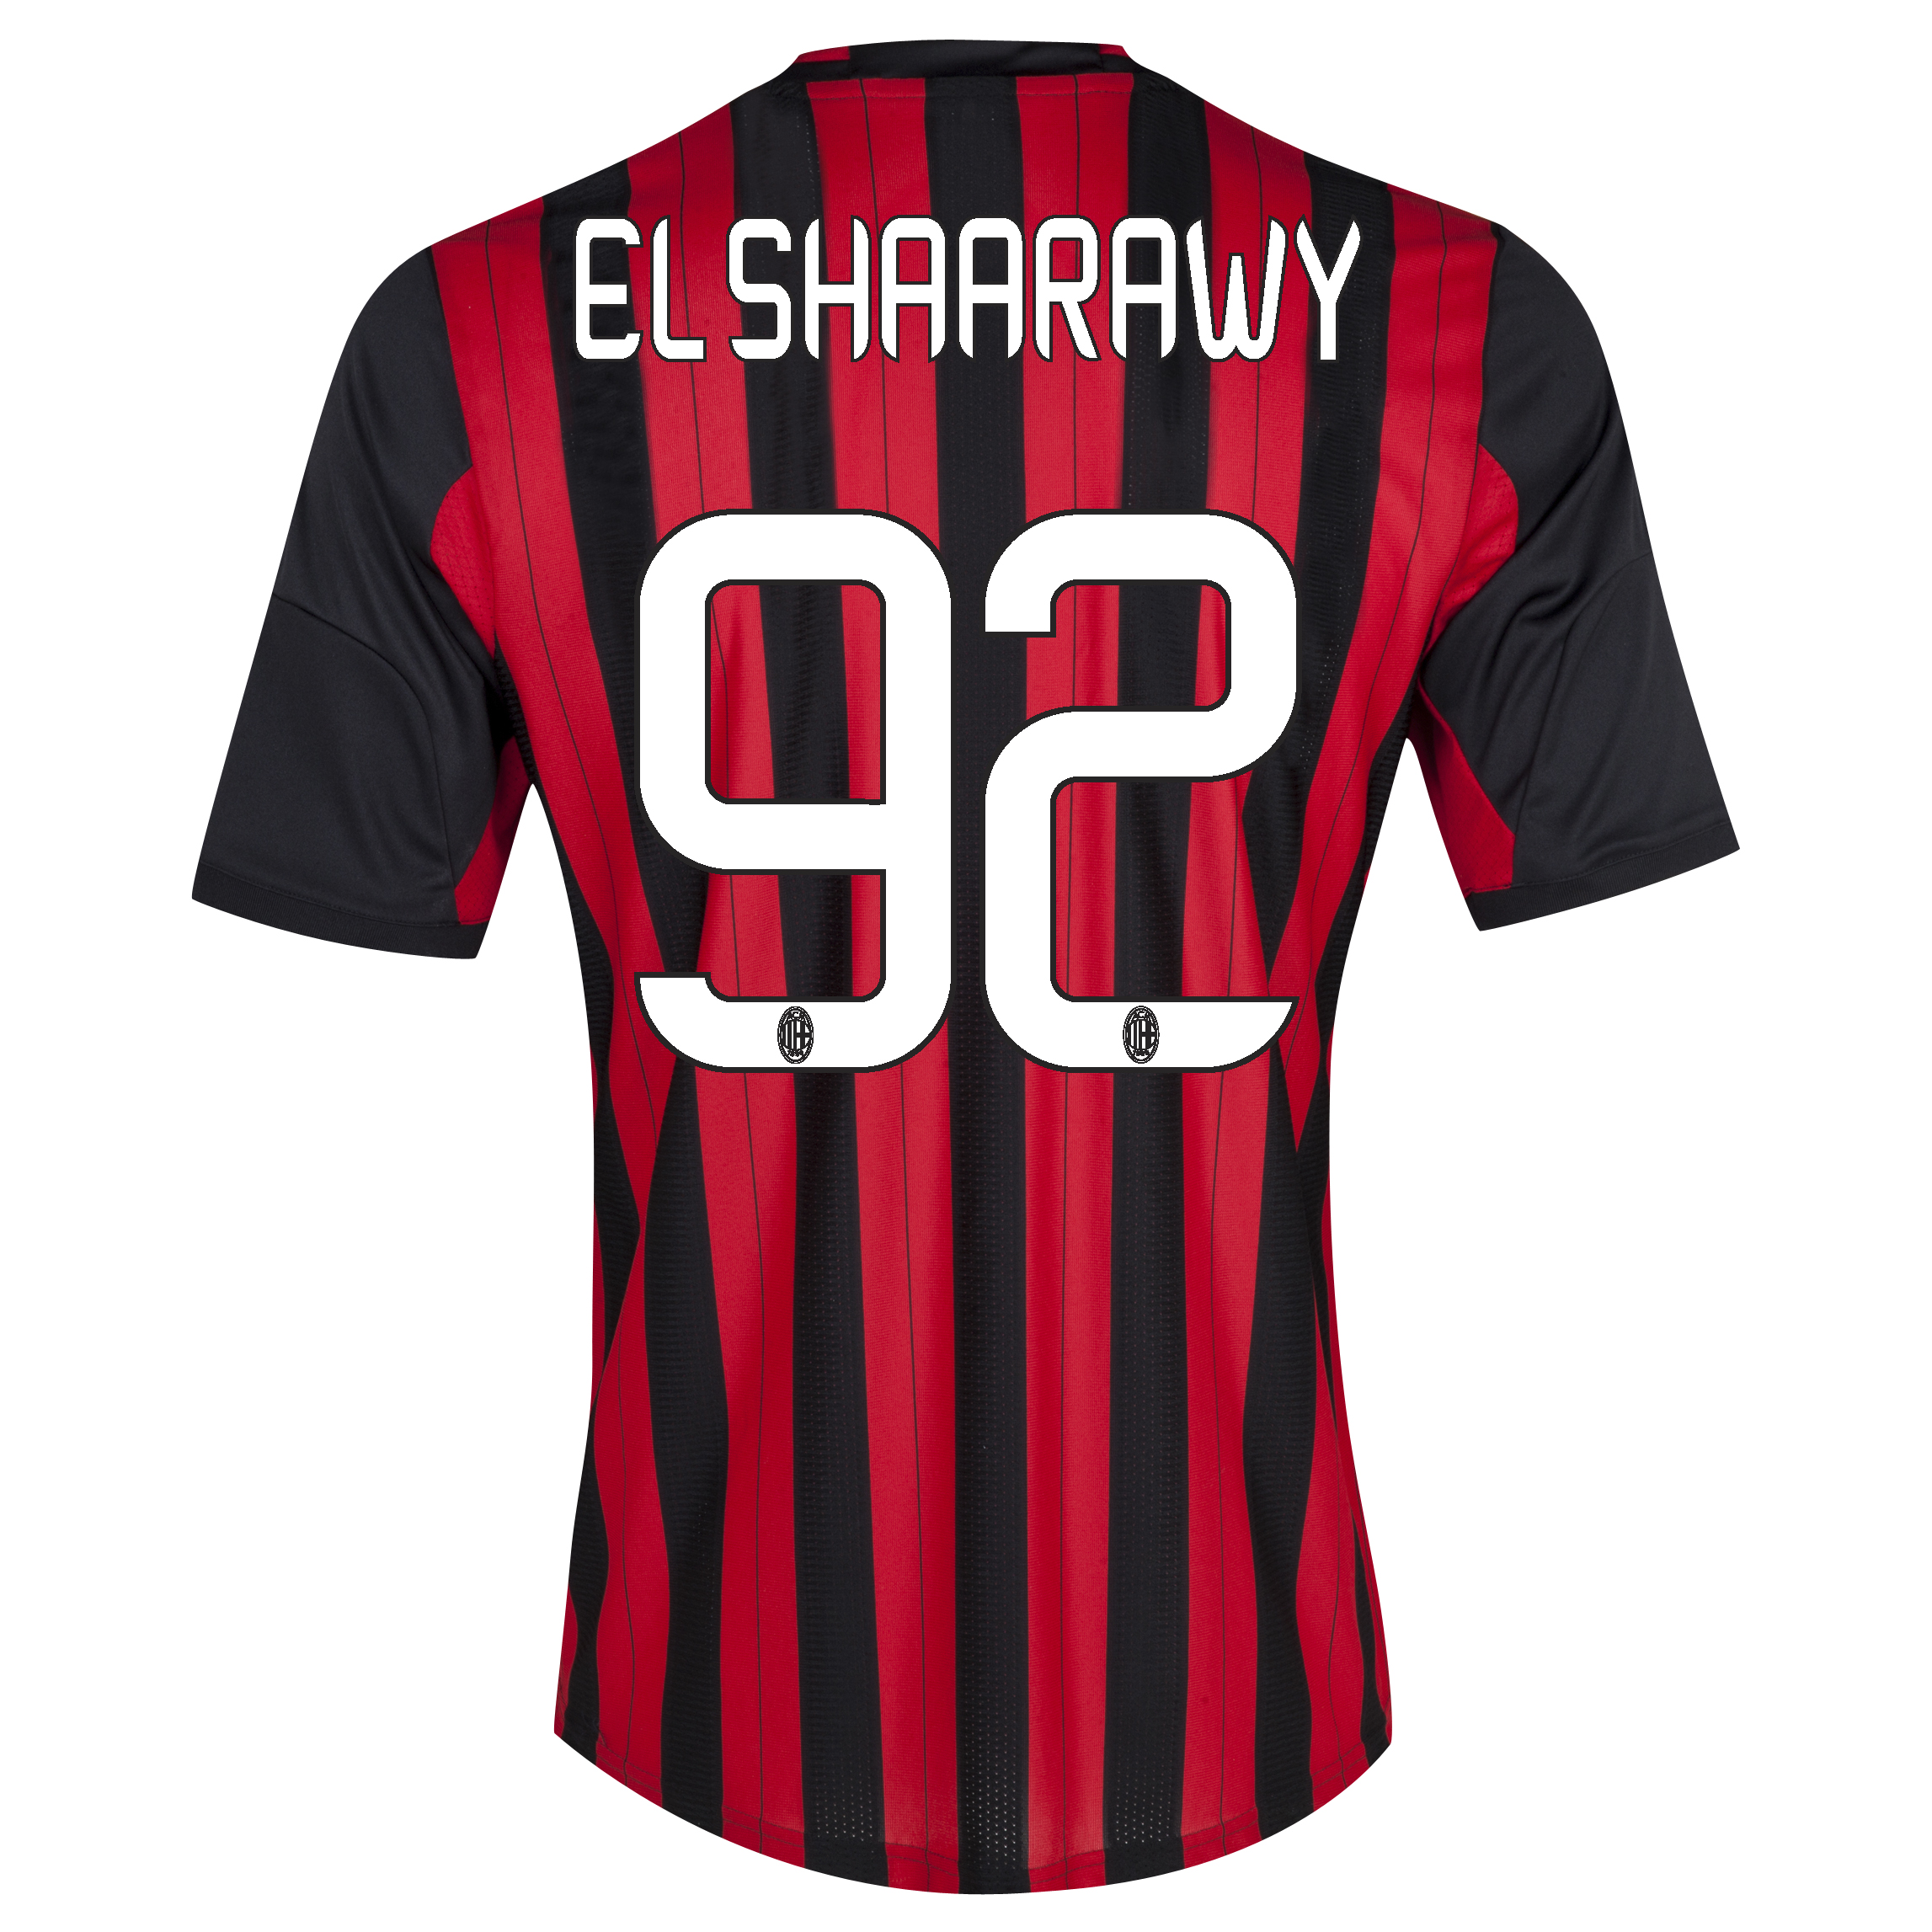 AC Milan Home Shirt 2013/14 with El Shaarawy 92 printing